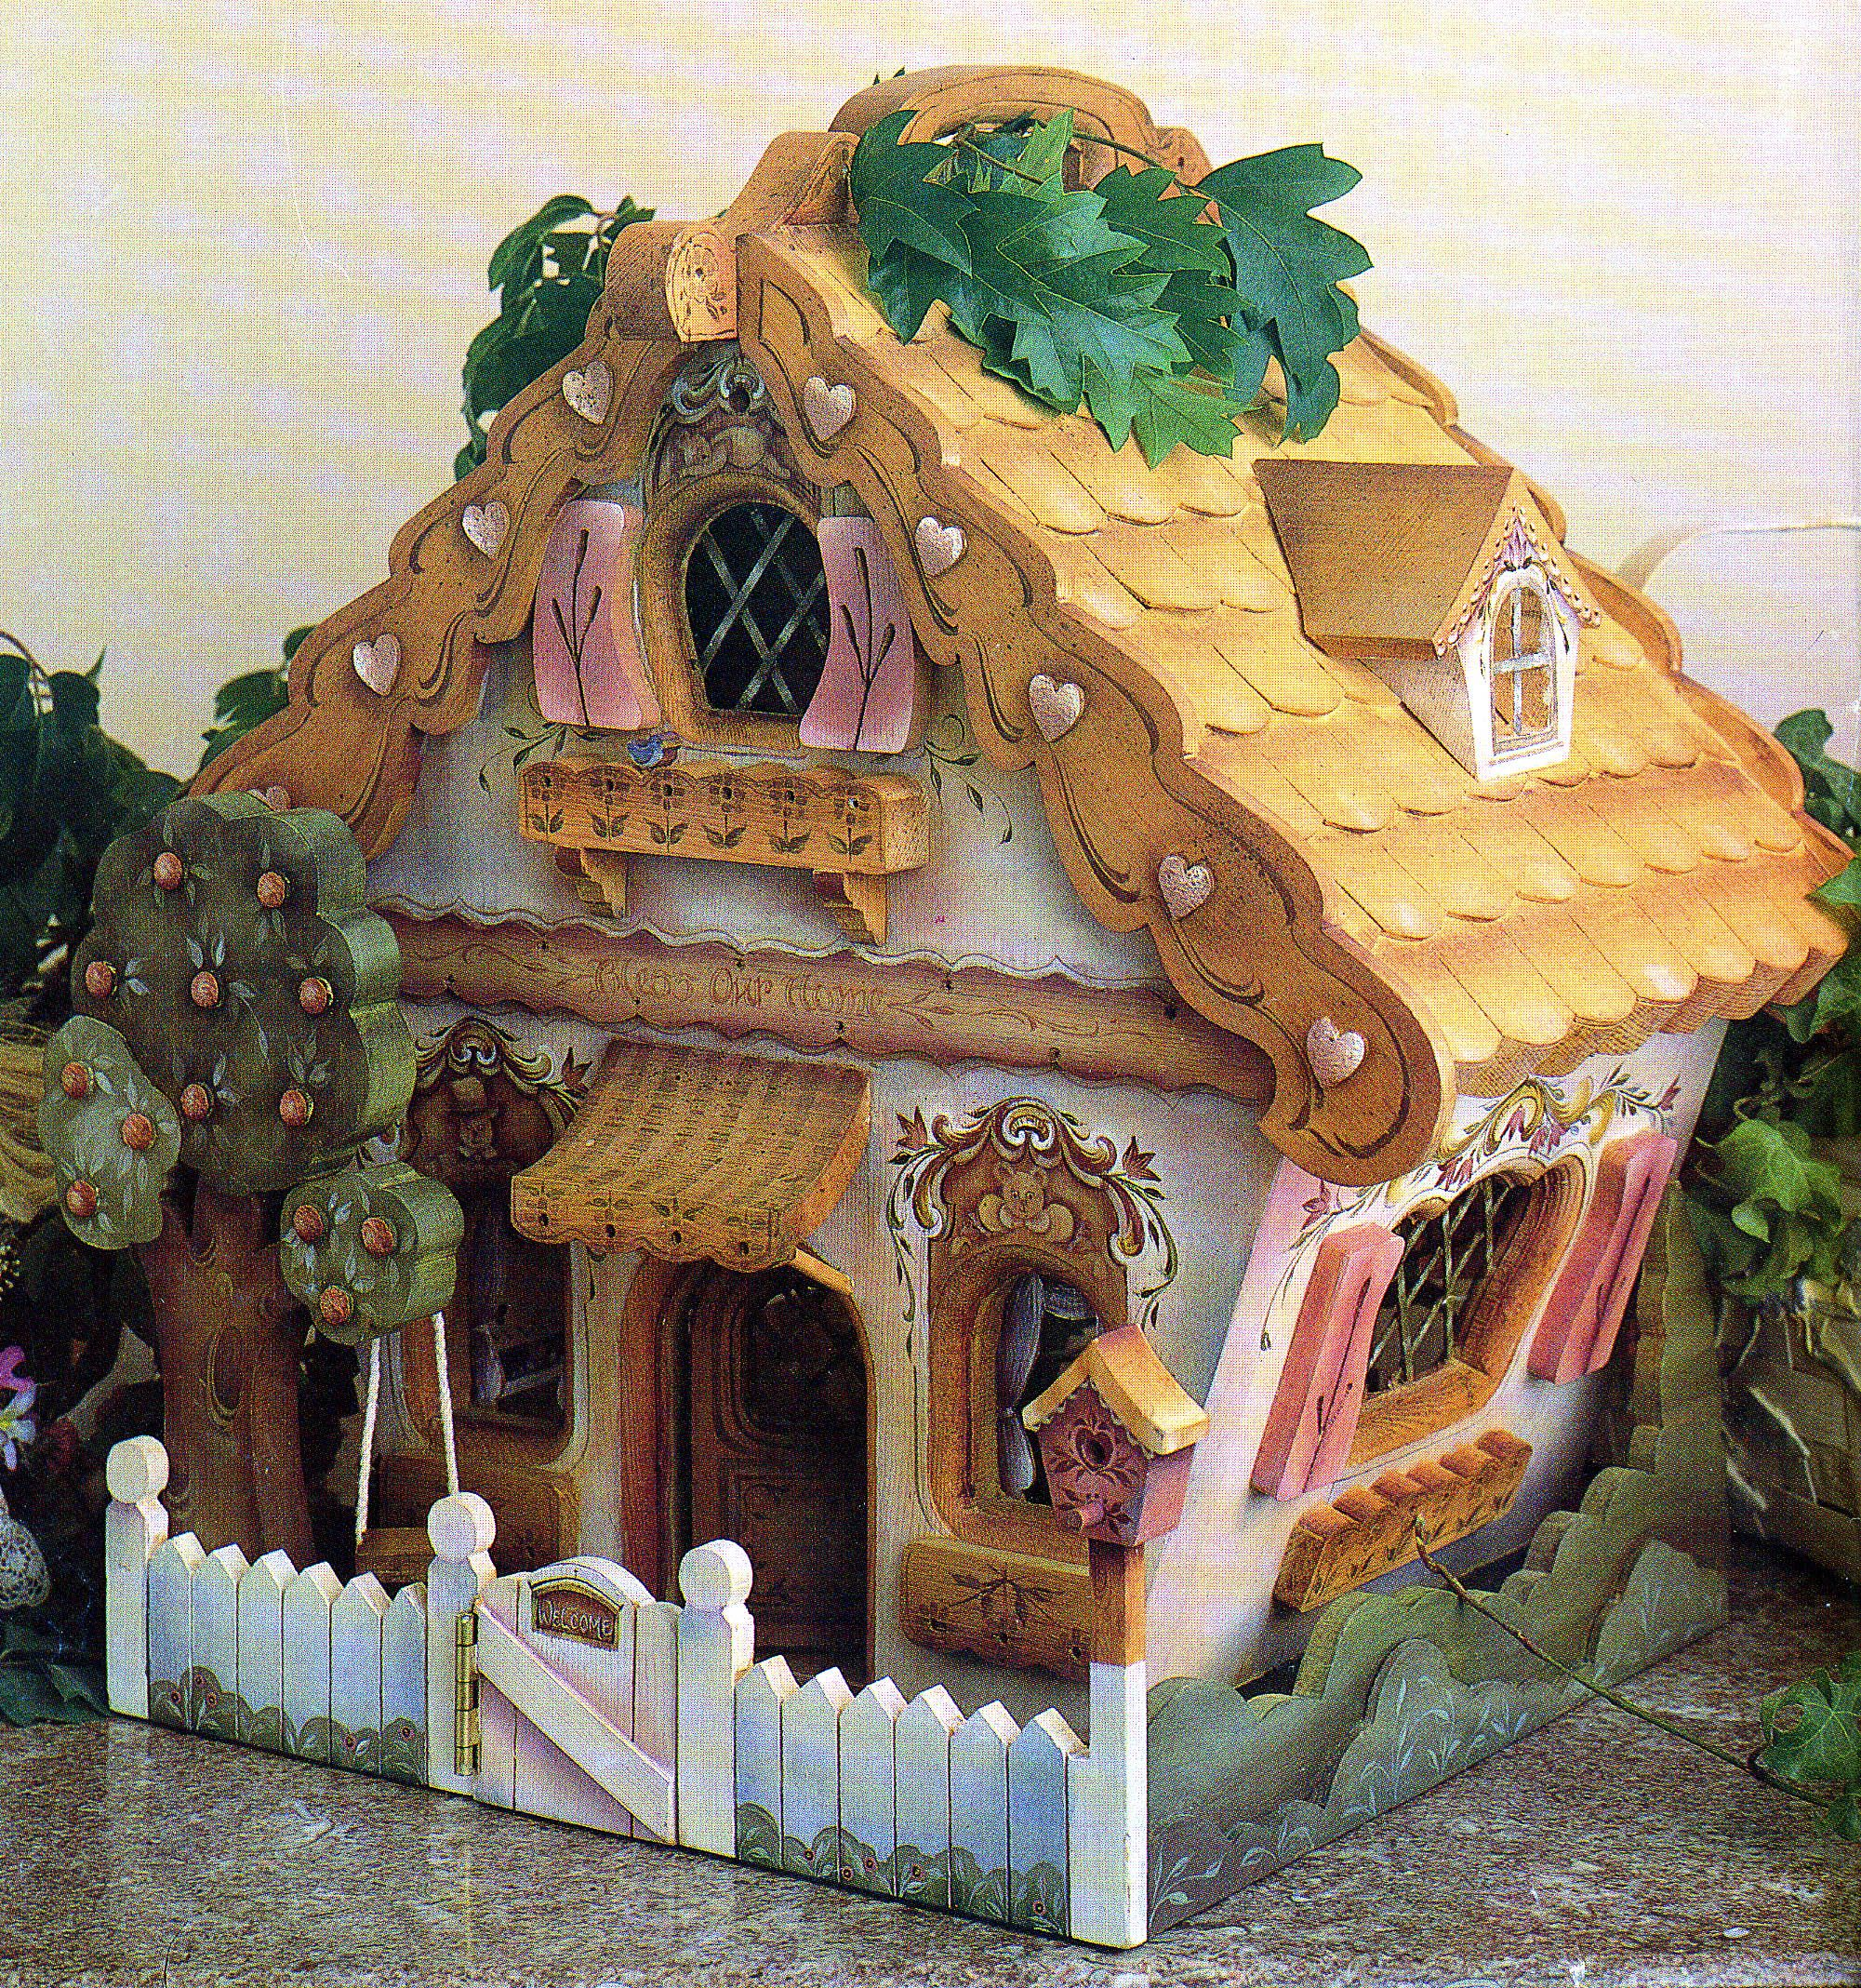 Woodworking Plan For Building A Fun Whymsical Doll House Full Size Patterns Gingerbread House Cookies Gingerbread House Make A Gingerbread House